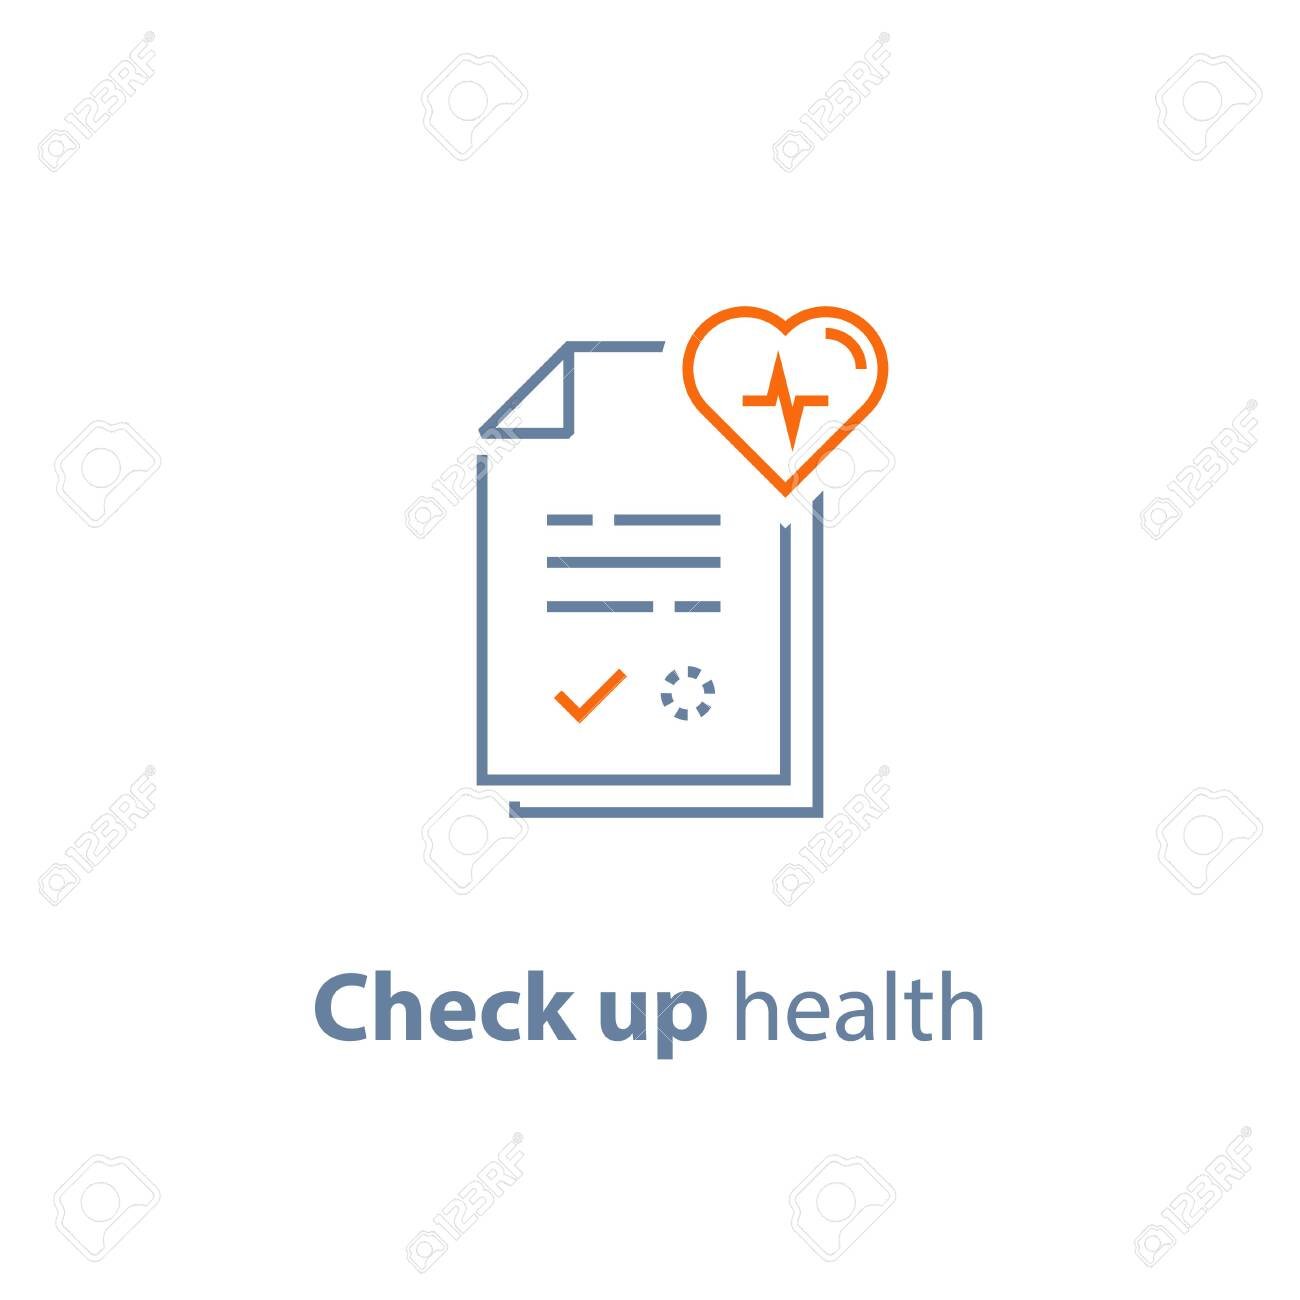 Health check up, cardiovascular disease prevention test, heart